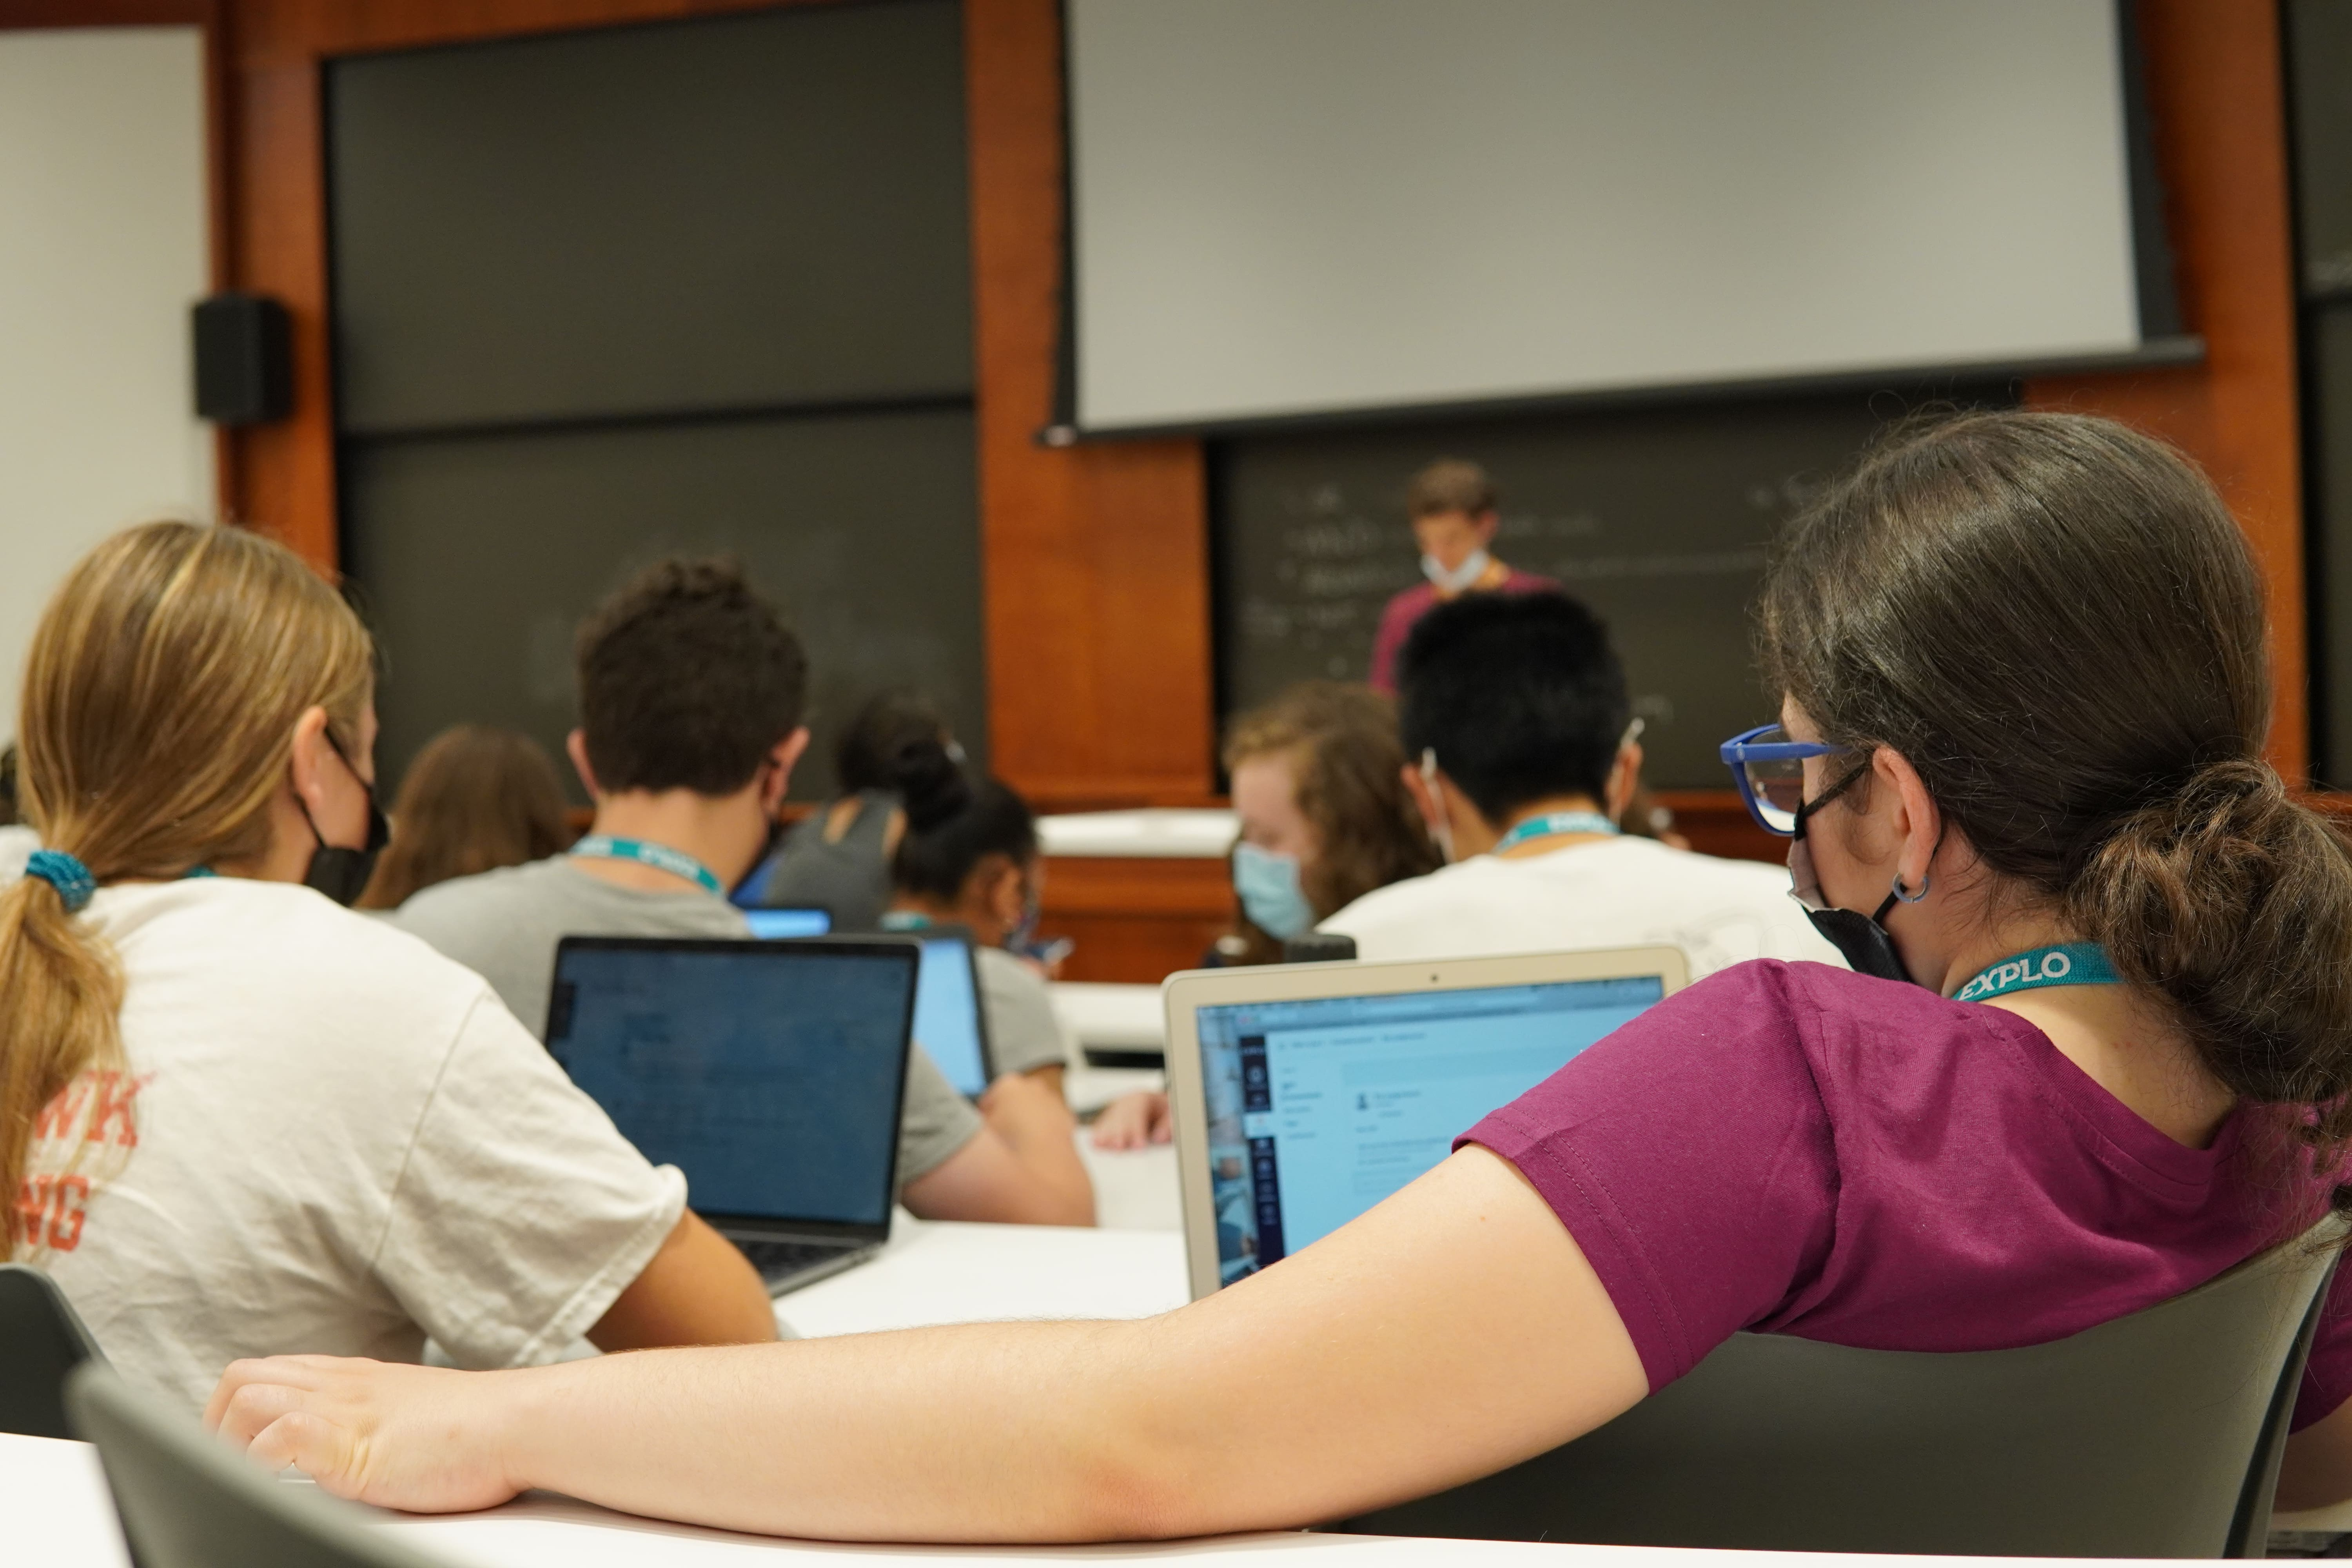 A student sits in the back of a lecture hall taking notes with the others, their arm laid out on a desk behind them.